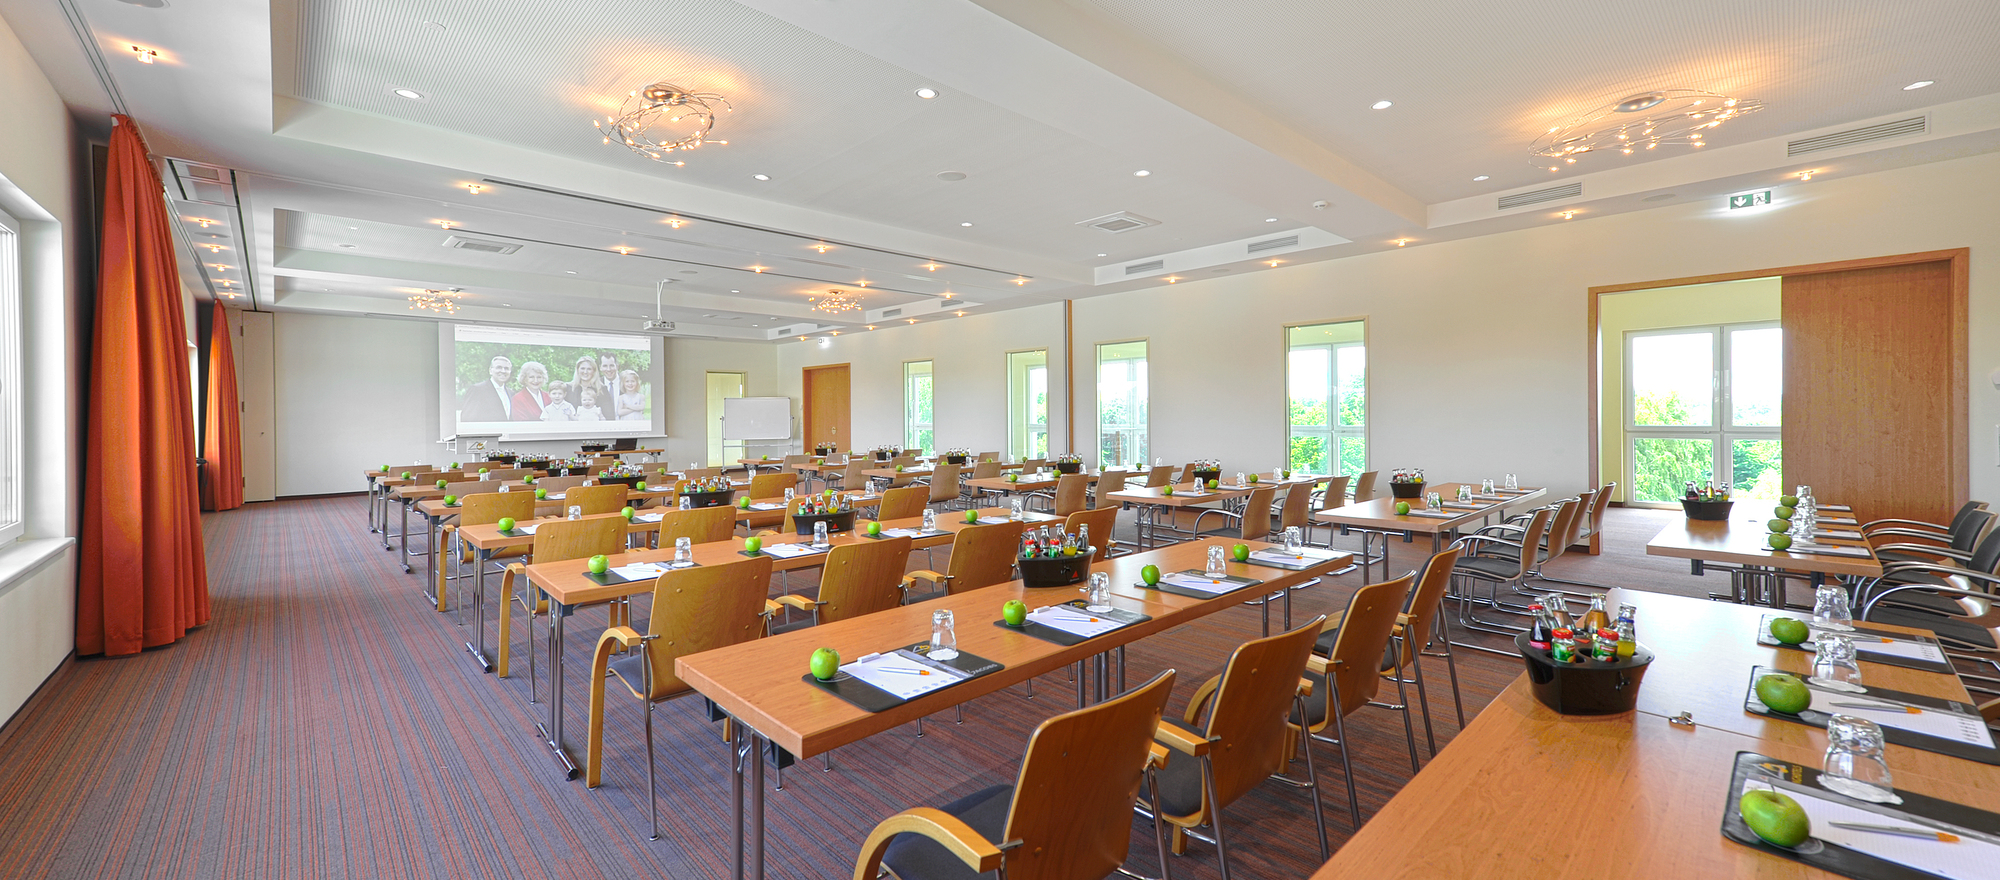 The 4-star hotel Ringhotel Am Stadtpark in Luenen offers event rooms from 5 up to 400 persons in different areas